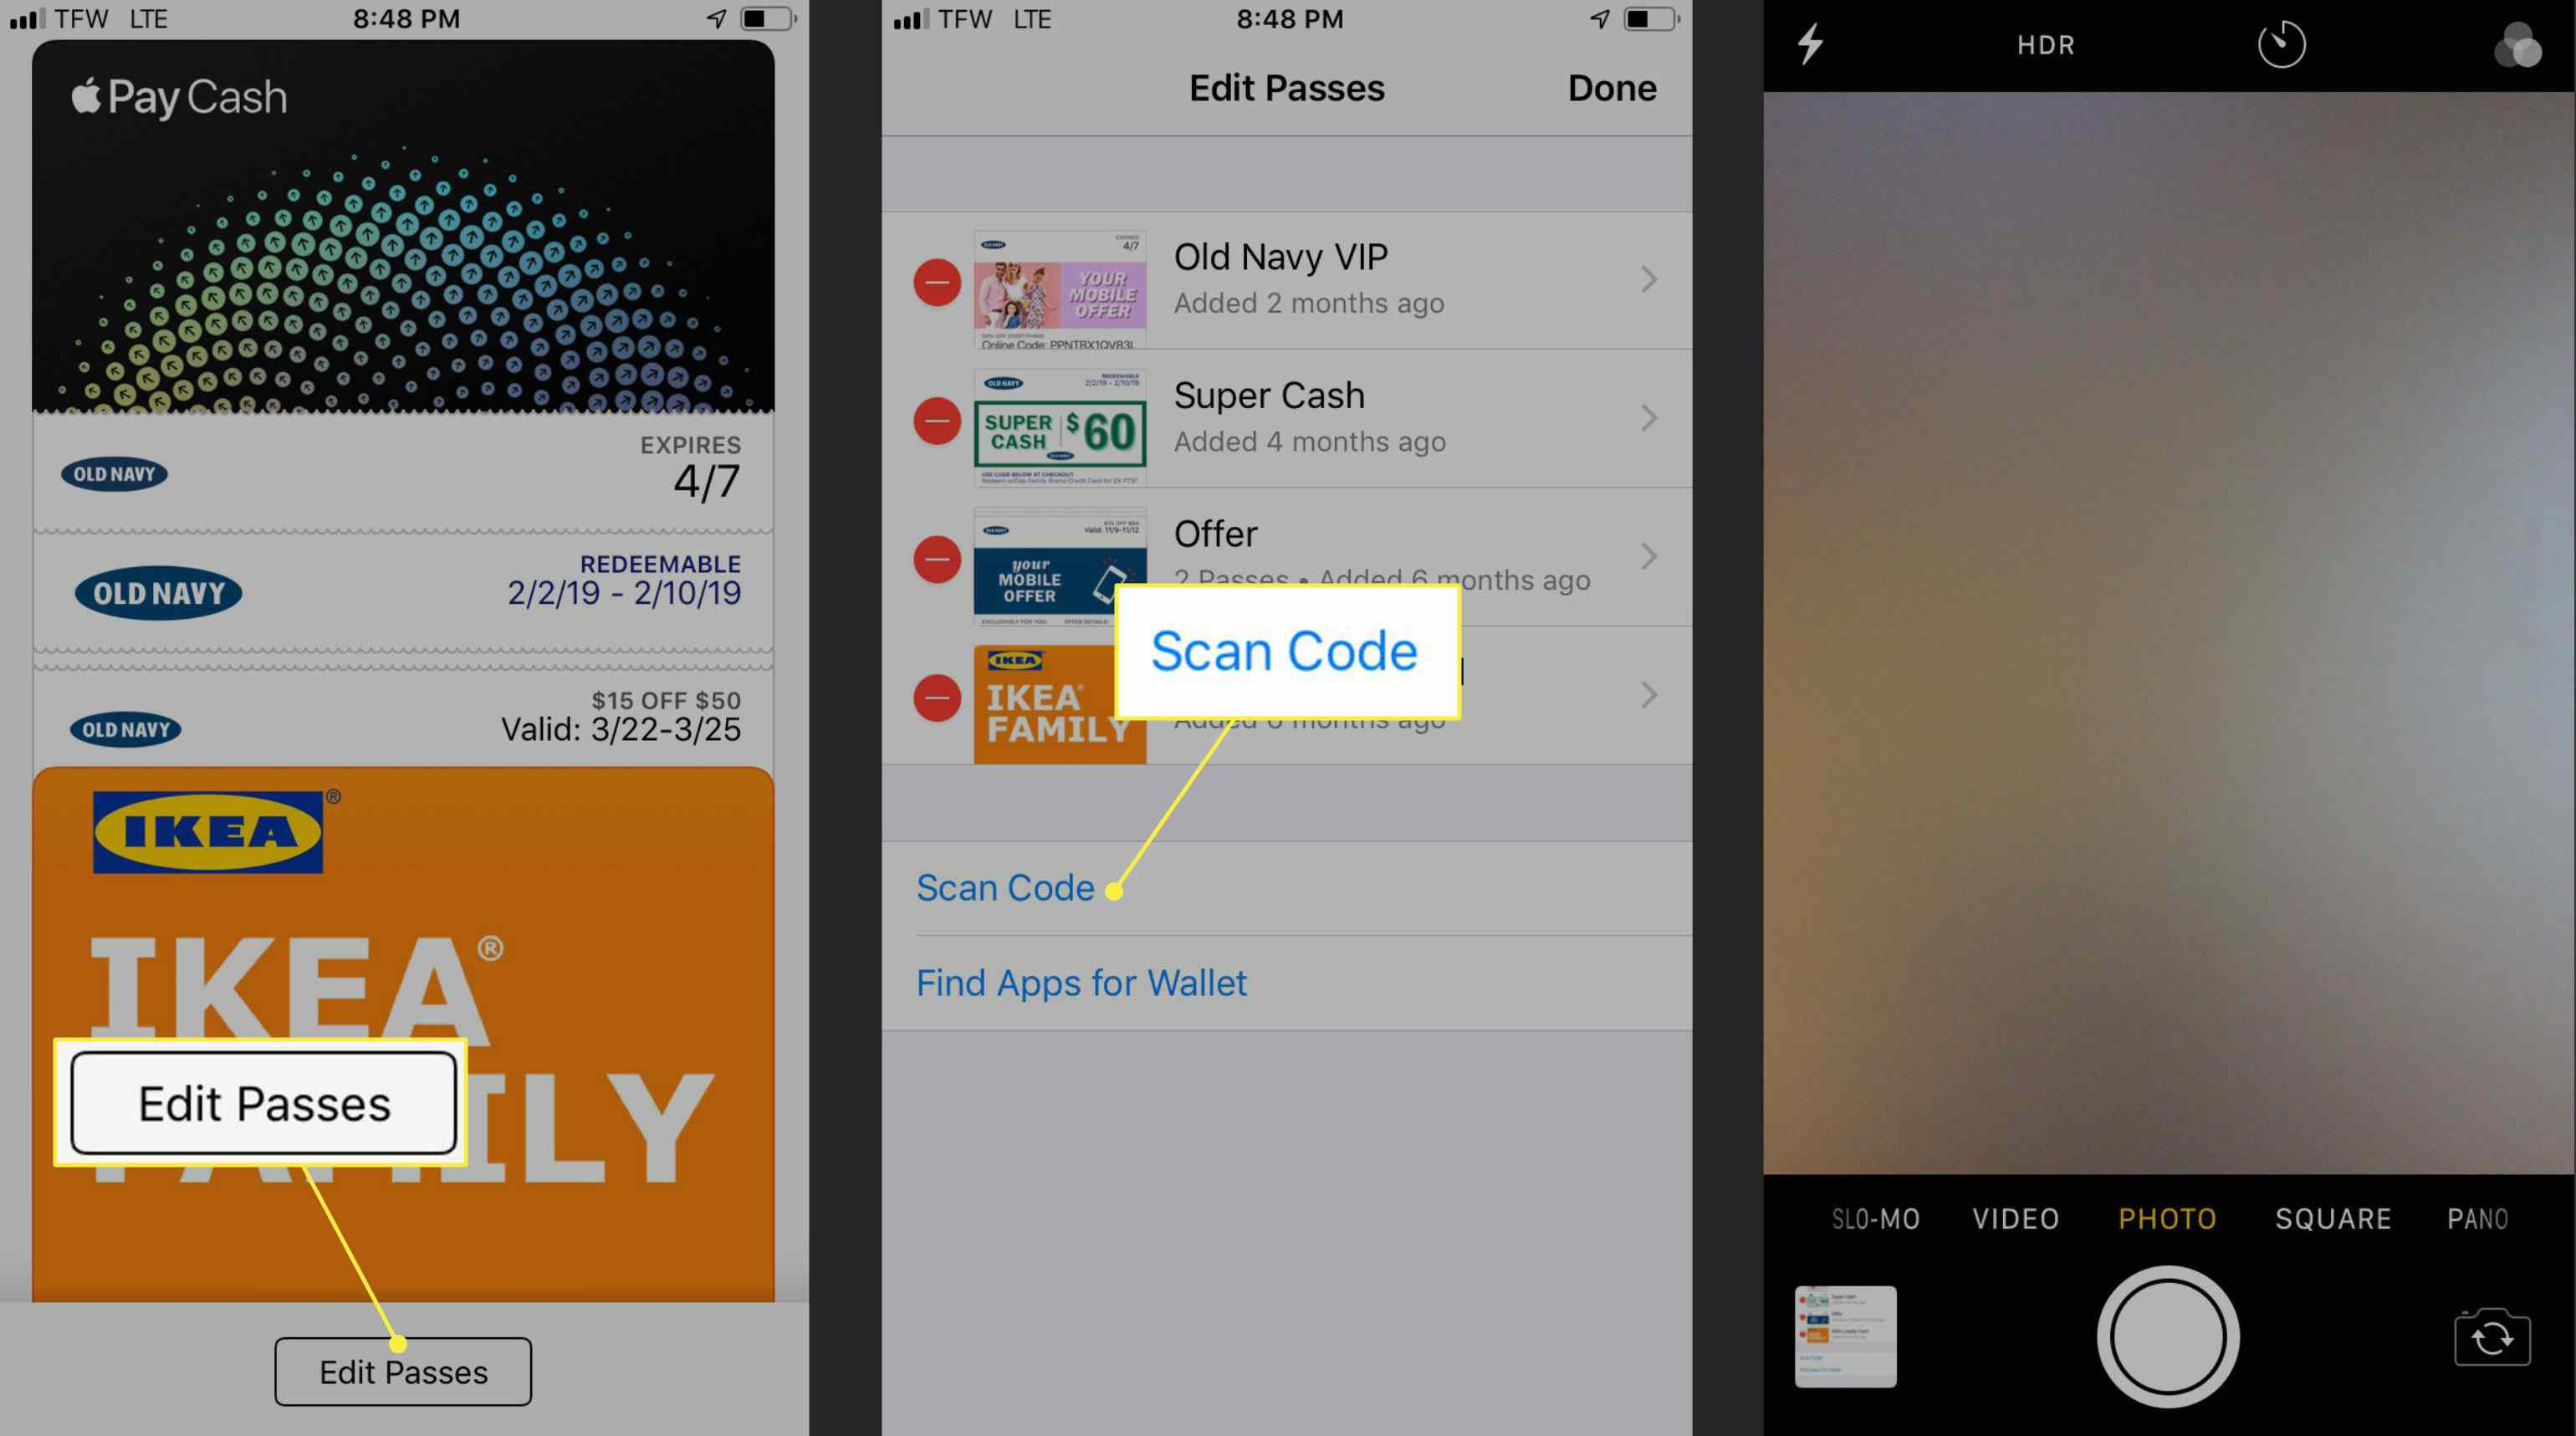 The Edit Passes and Scan Code commands in Apple Wallet